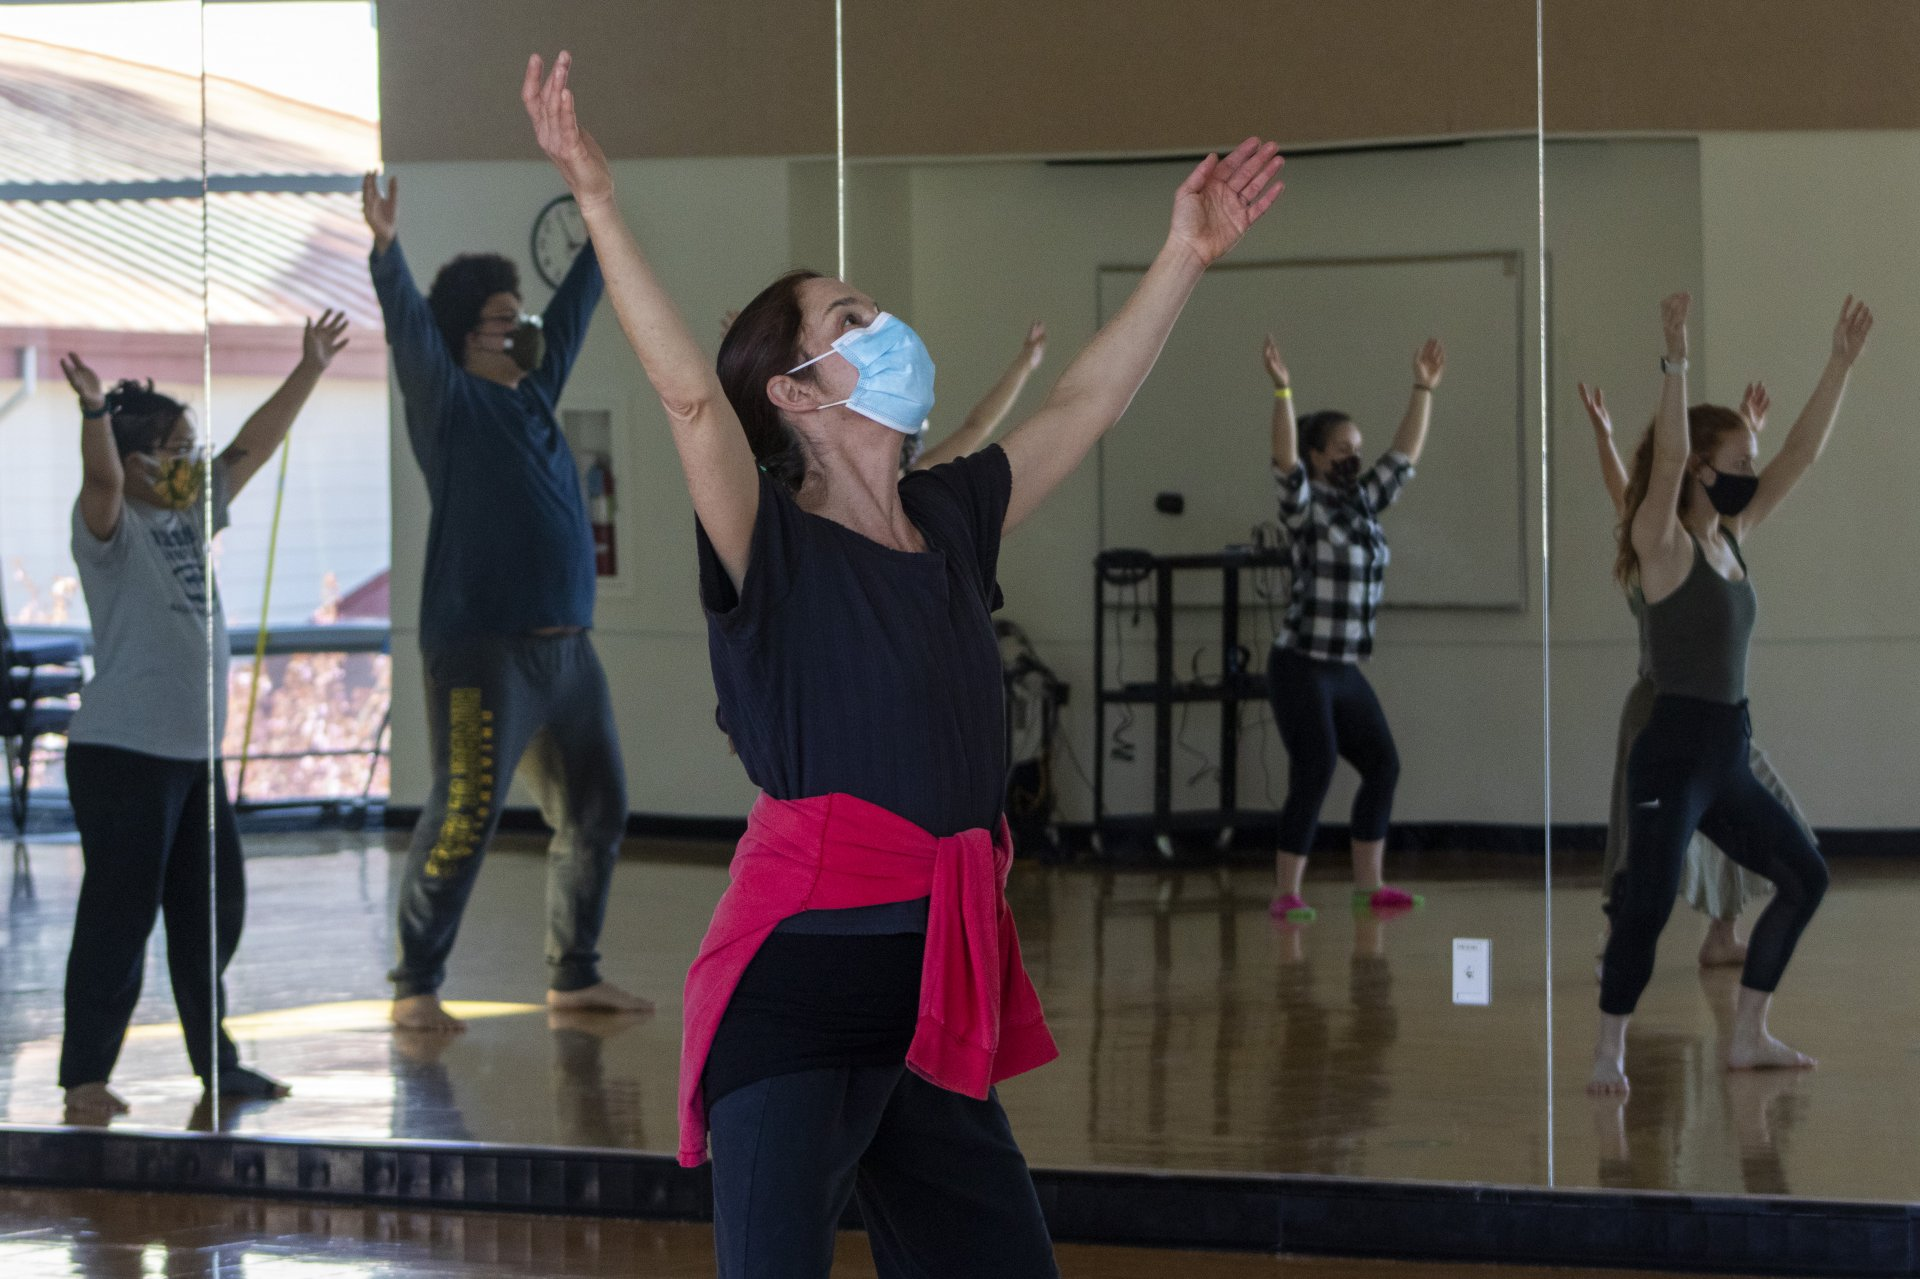 Professor Jandy M Bergmann leads the routine for her modern contemporary dance class on April 12, in preparation for their virtual performance in this year's spring concert. | Photo by Dakota Cox